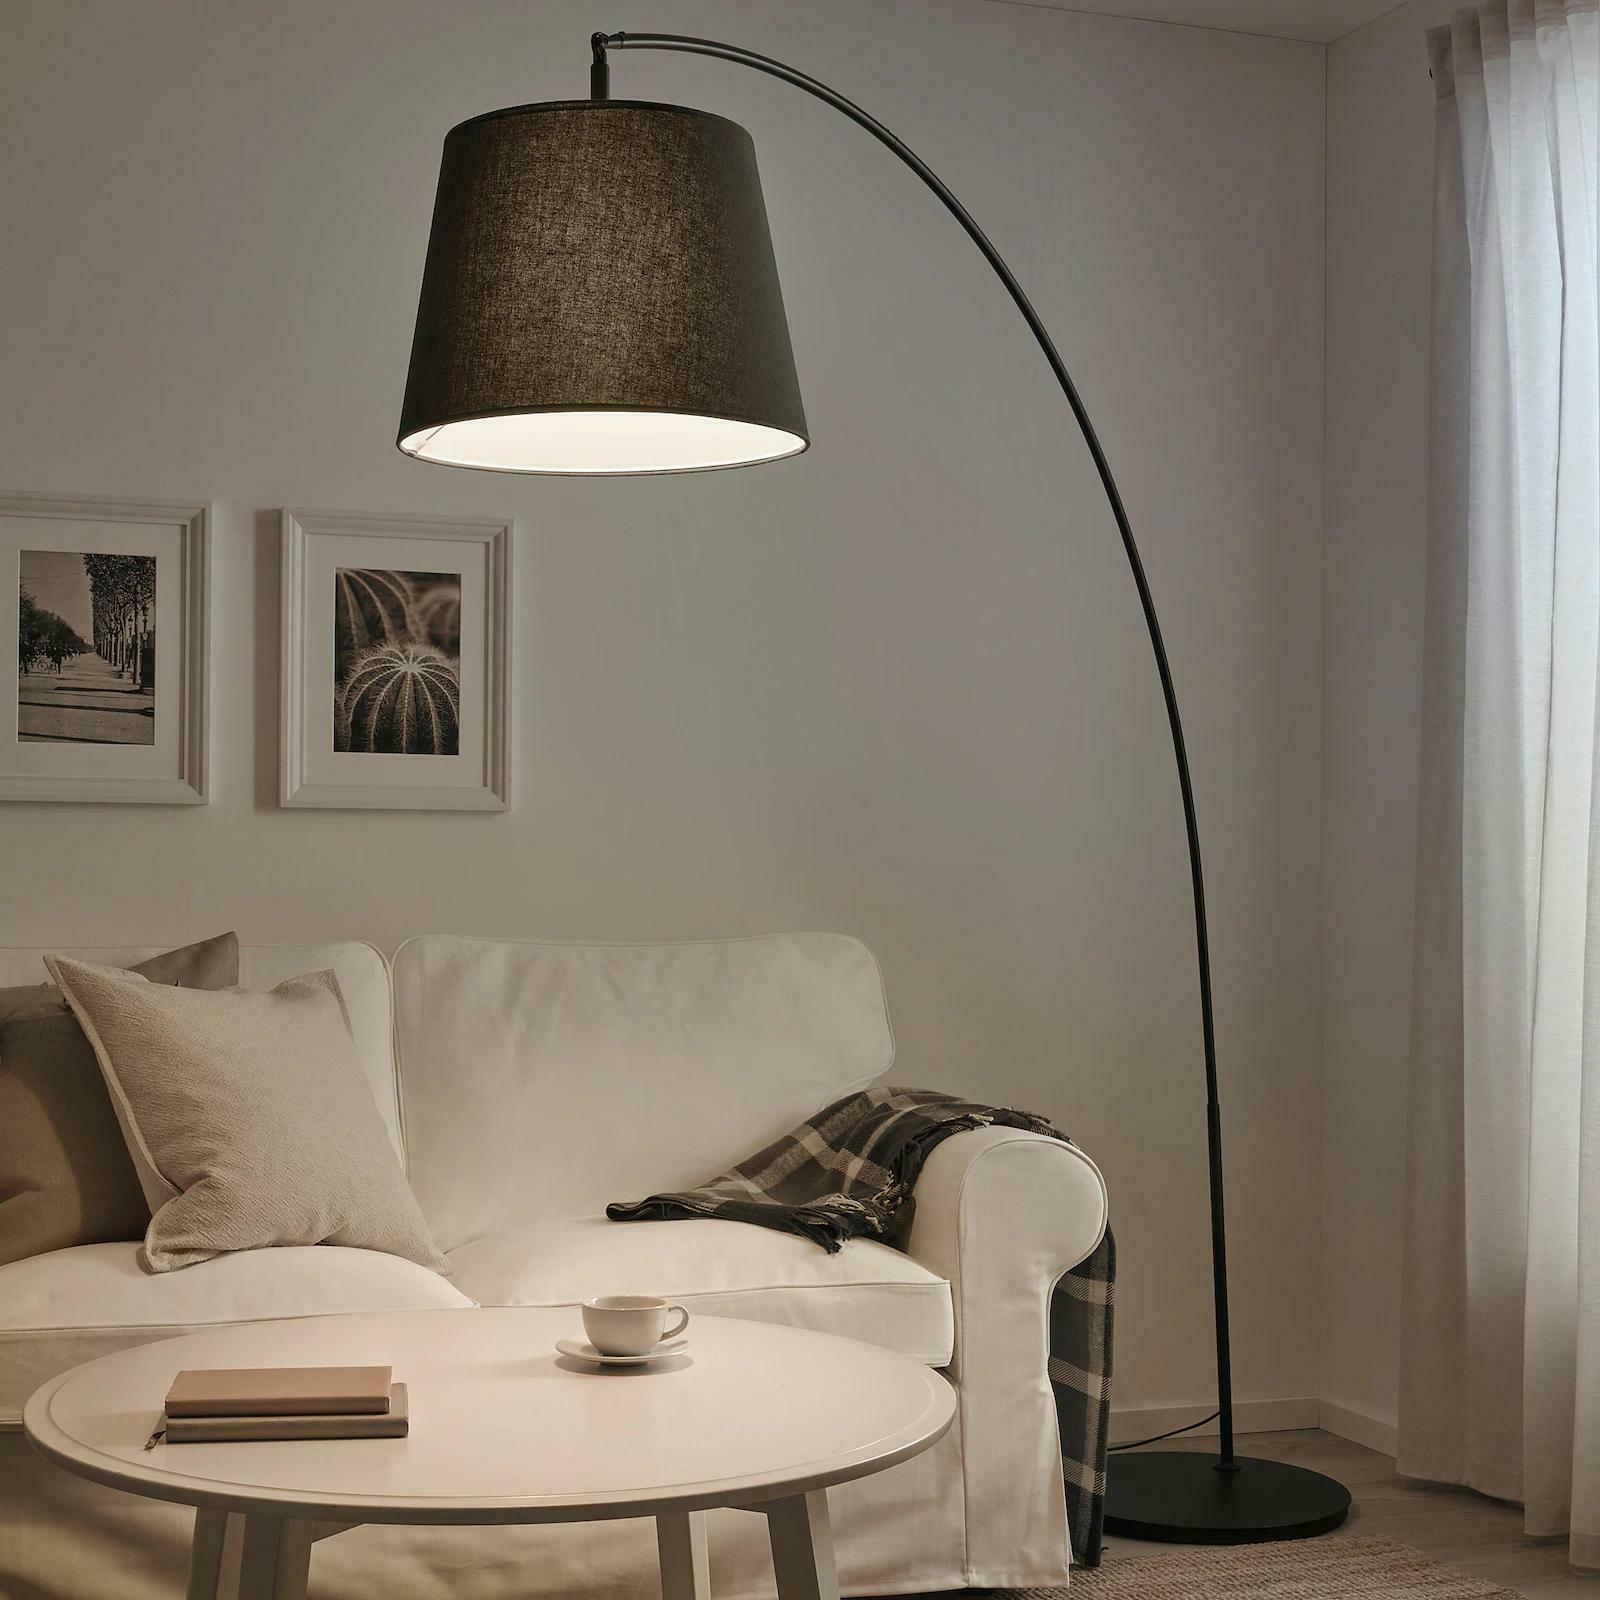 Ikea BASE ONLY, arched, -